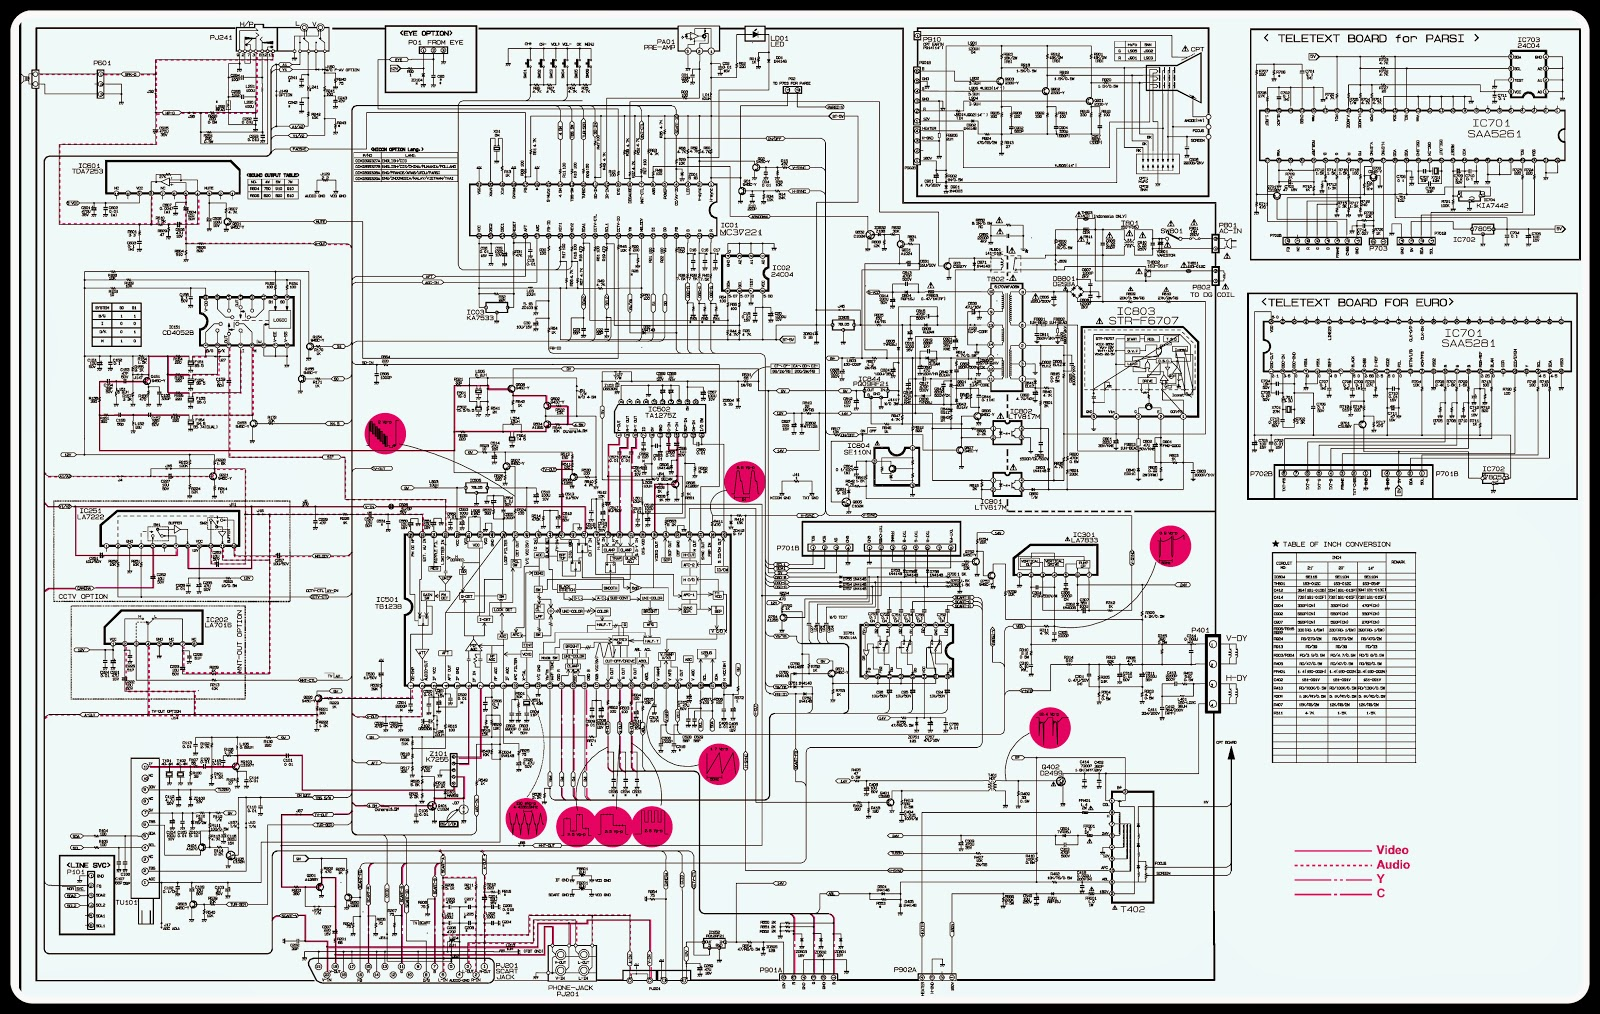 Diagram Lg Tv Diagram Full Version Hd Quality Tv Diagram Sitexolin Unbroken Ilfilm It